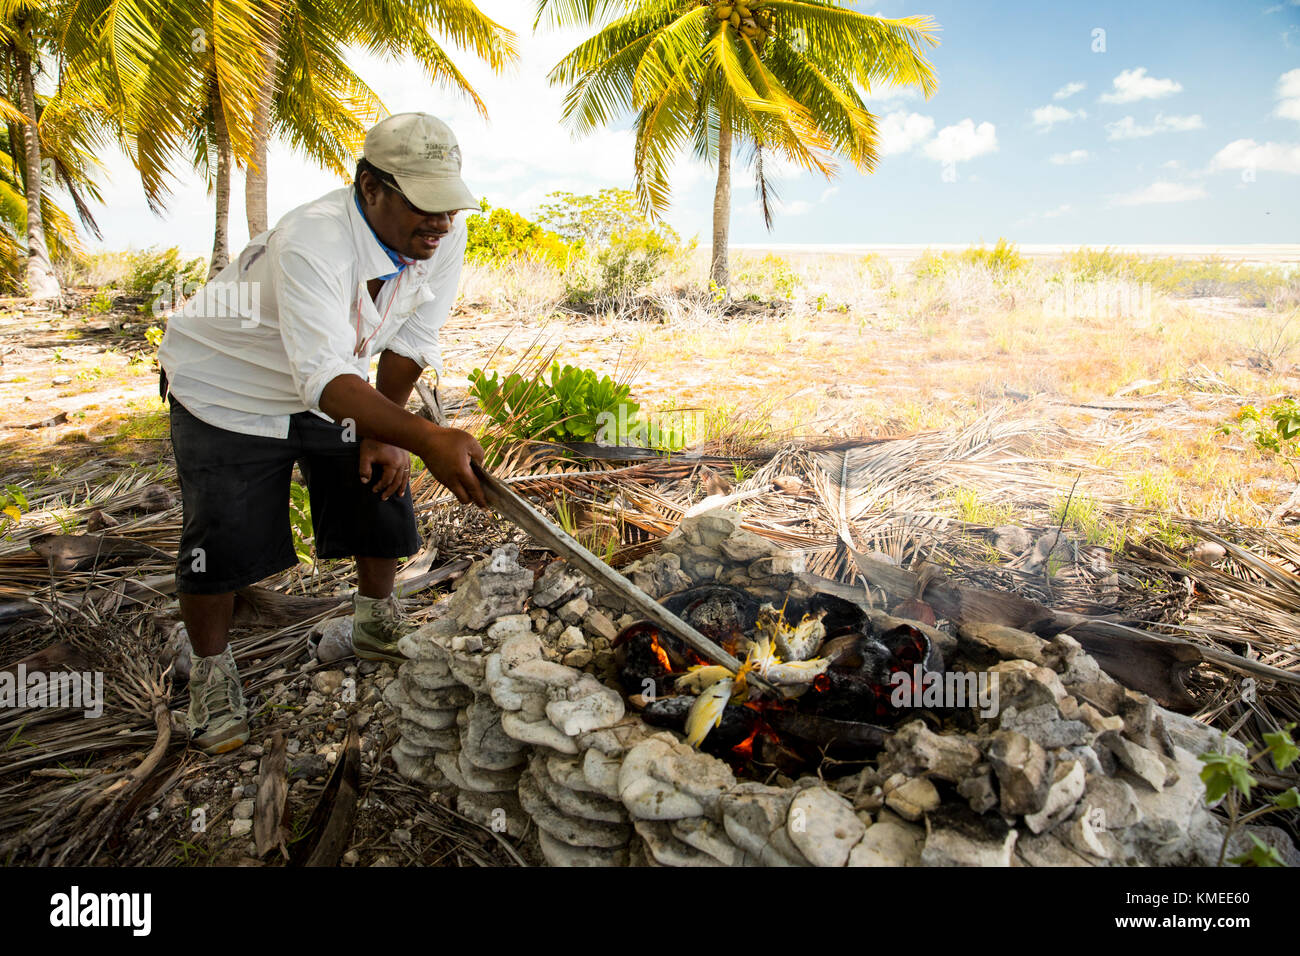 Cooking lunch on coconut frond fire, Kiribati - Stock Image